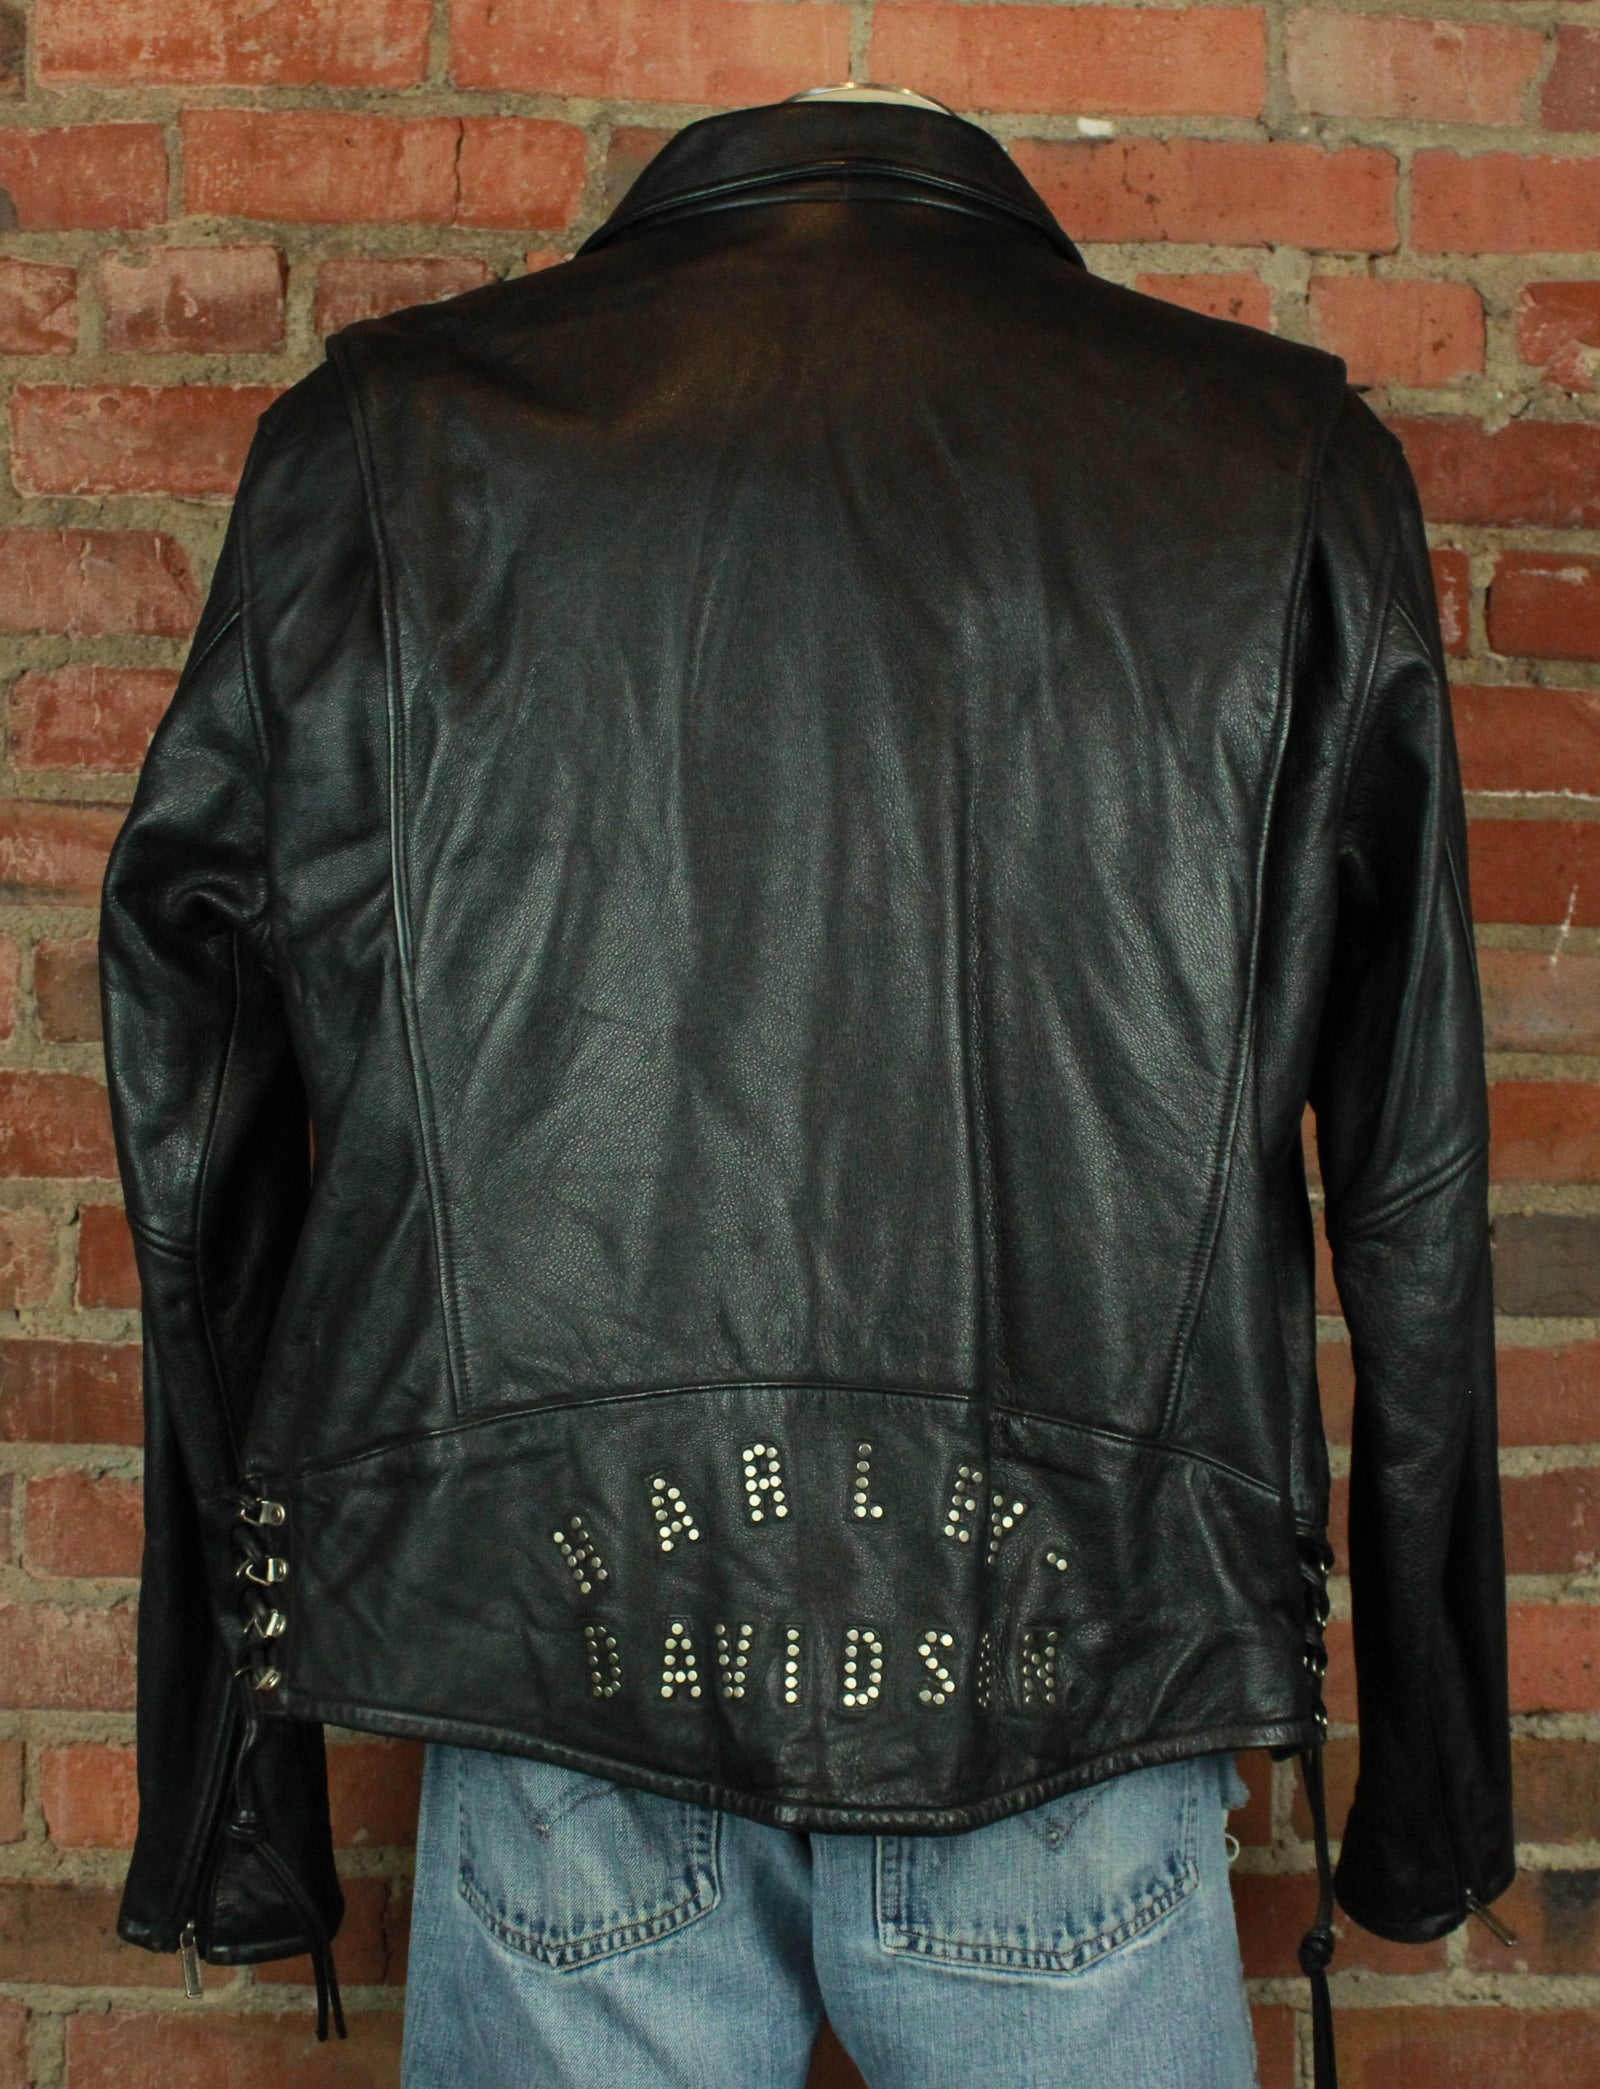 Men's Vintage Harley Davidson Black Leather Biker Jacket - XL